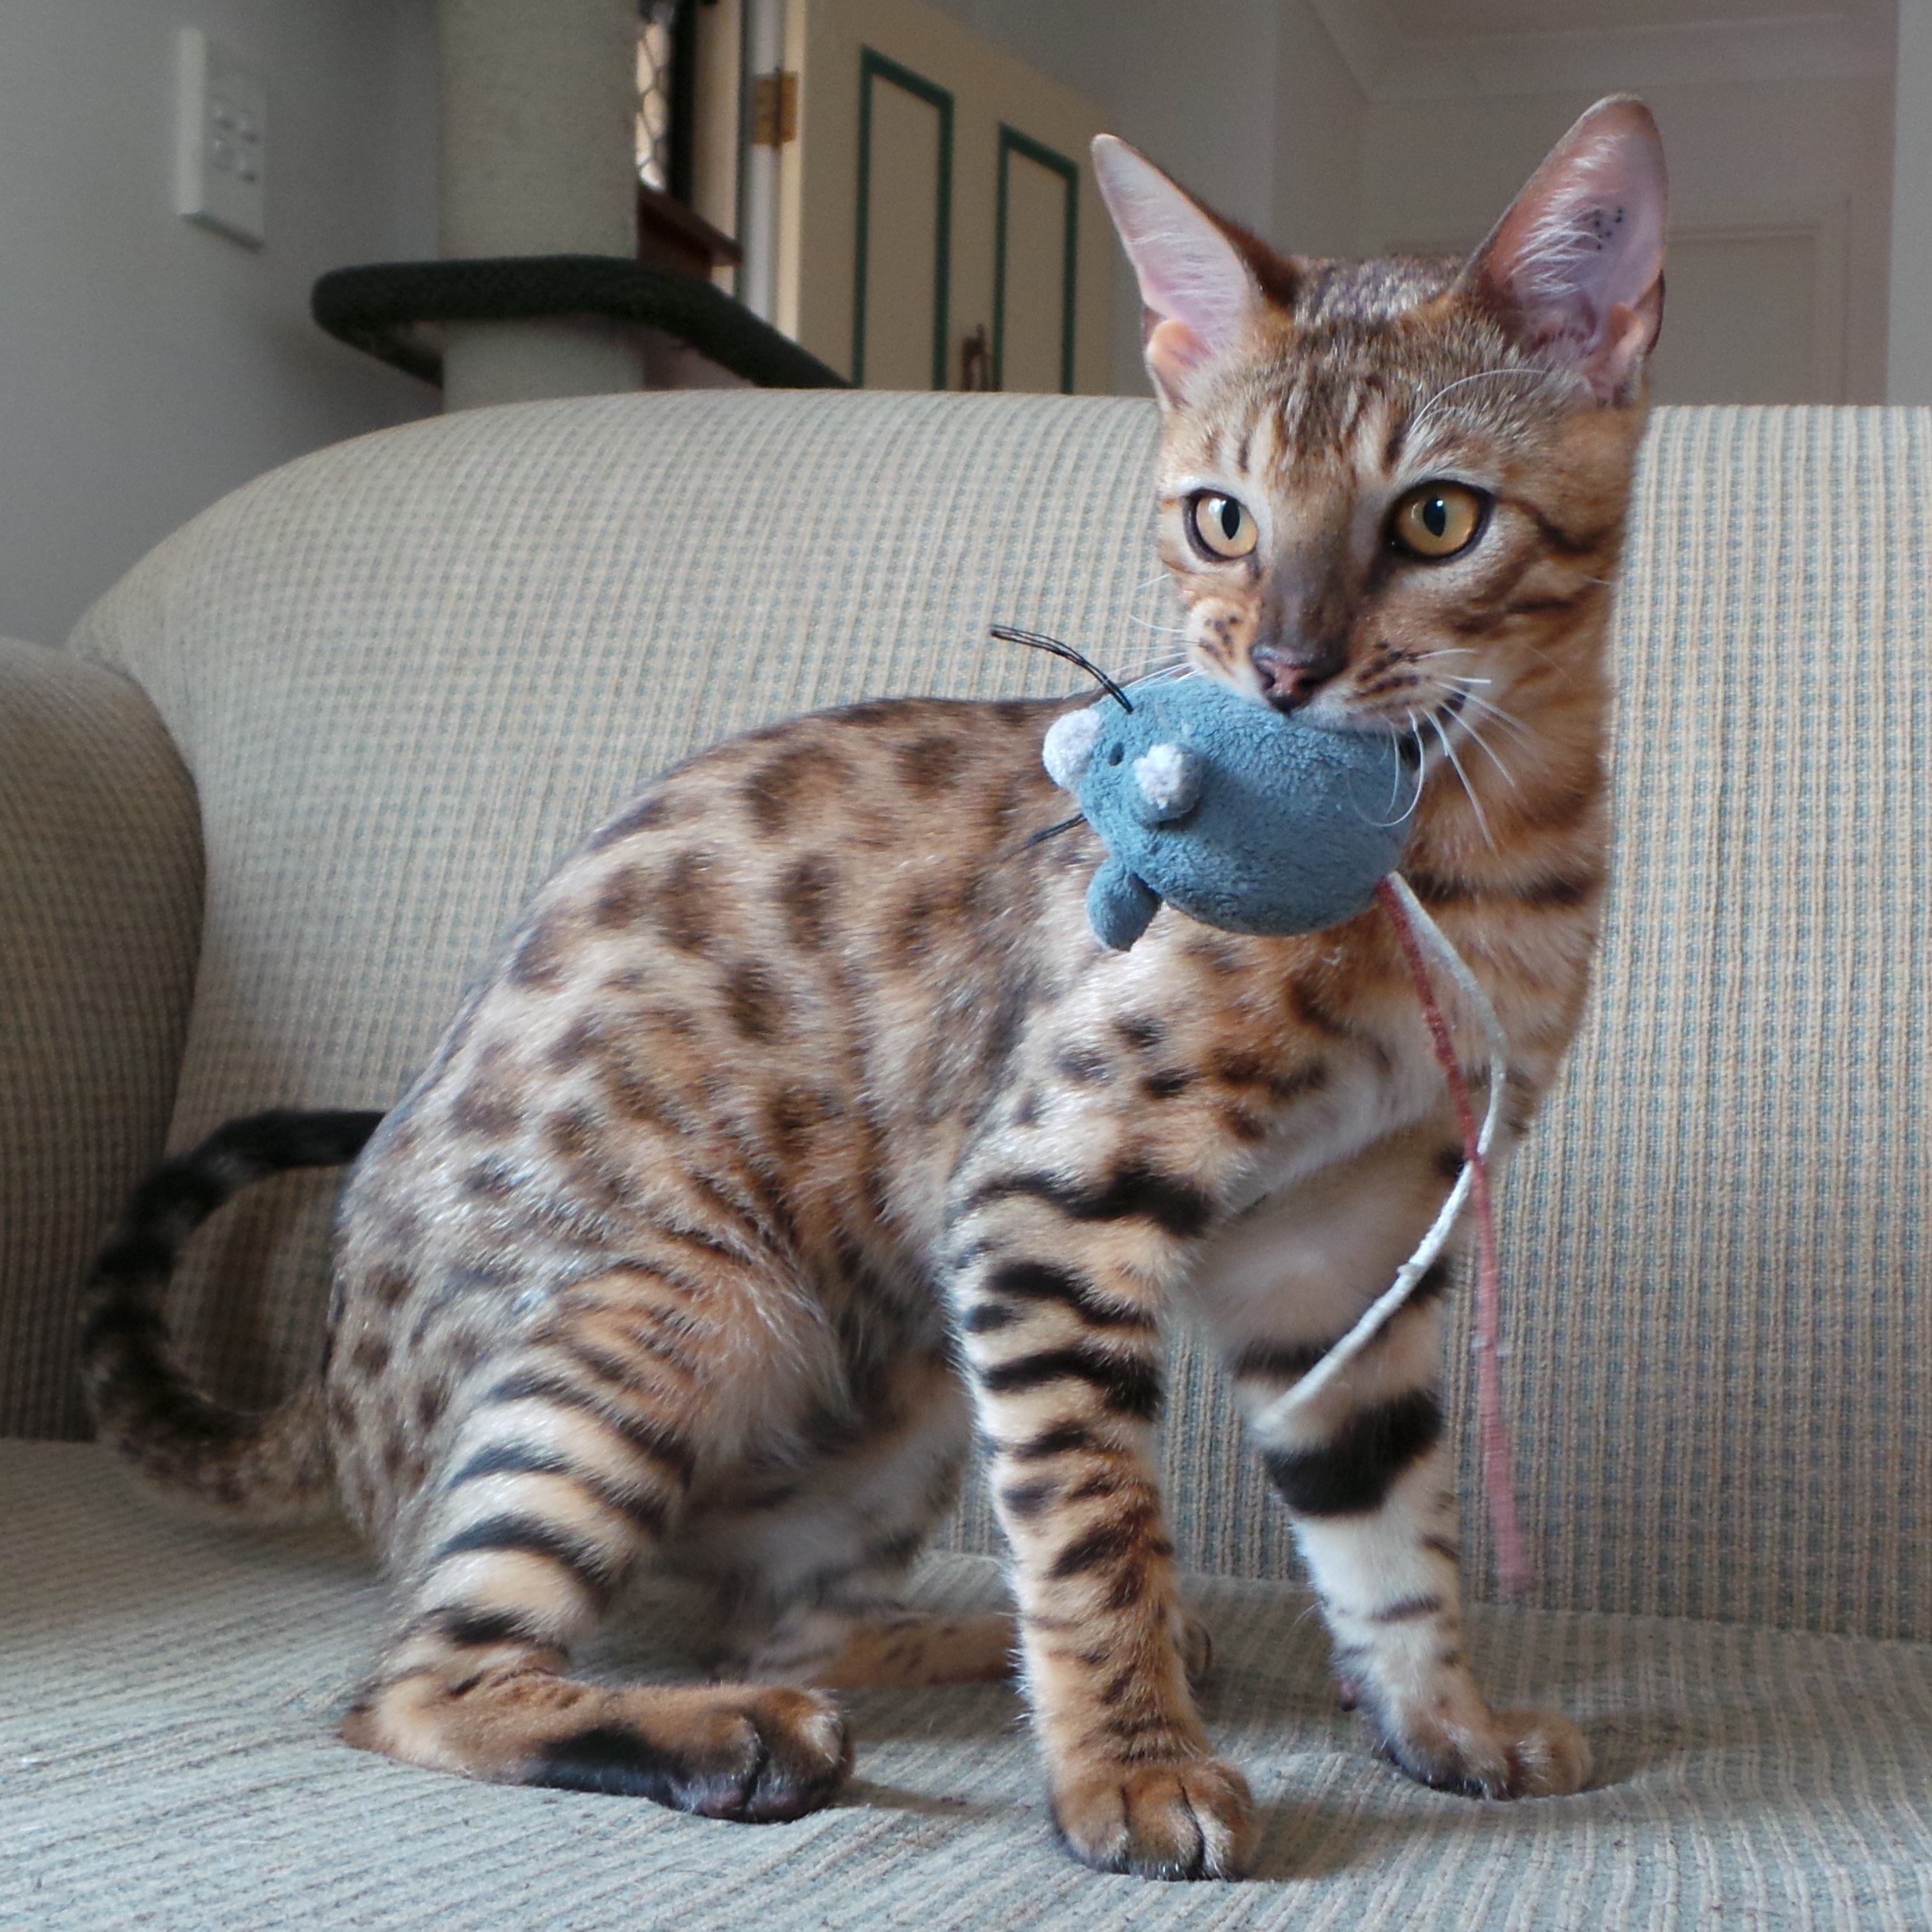 Kinglake Bengals - bengal kittens for sale Gold Coast Australia